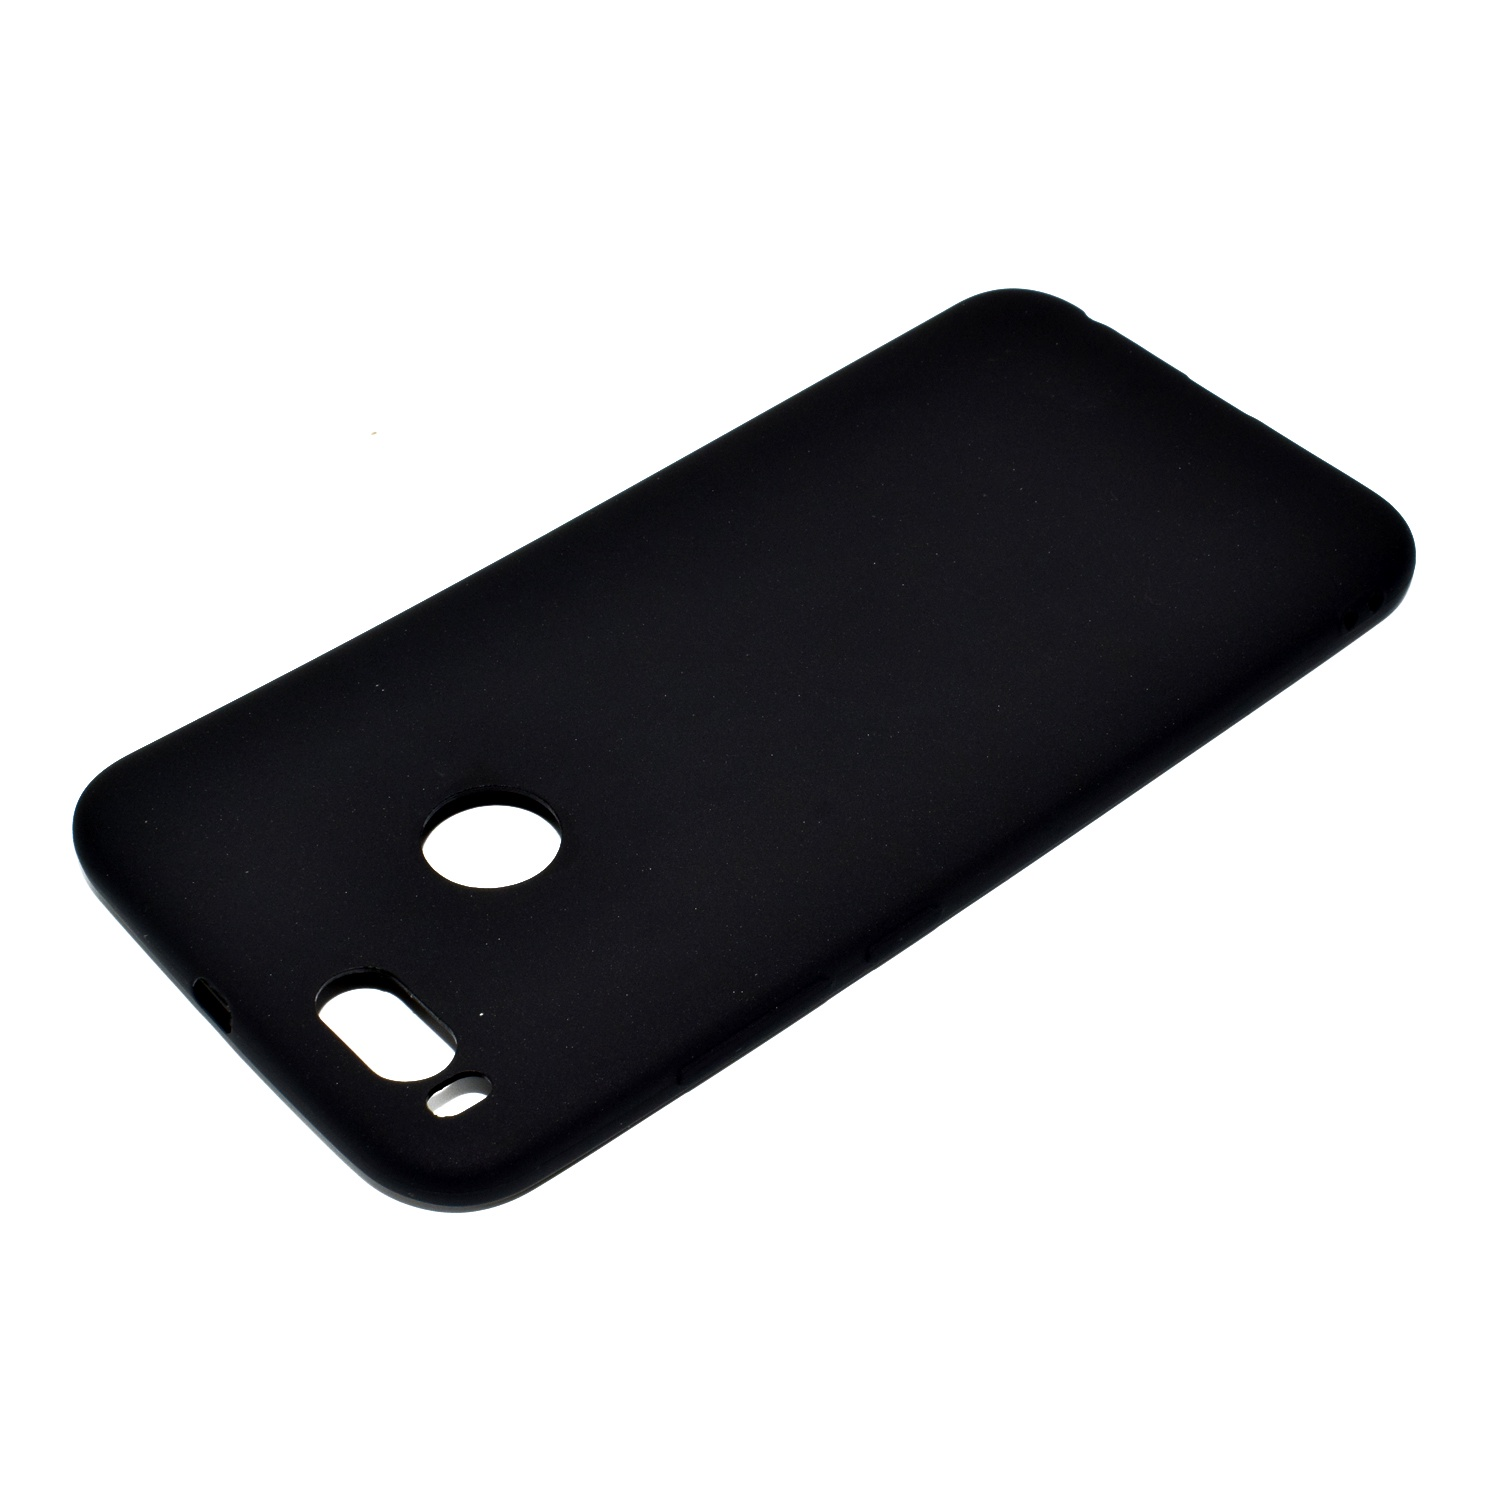 Xiaomi Mi 5x Mi A1 Back Case Ultra Slim Fit Soft Tpu Phone Case Anti-scratch Protective Cover Black hot sale high quality best price silicone soft gel protective case skin cover shell protector for ndsl for nds lite 5 colors